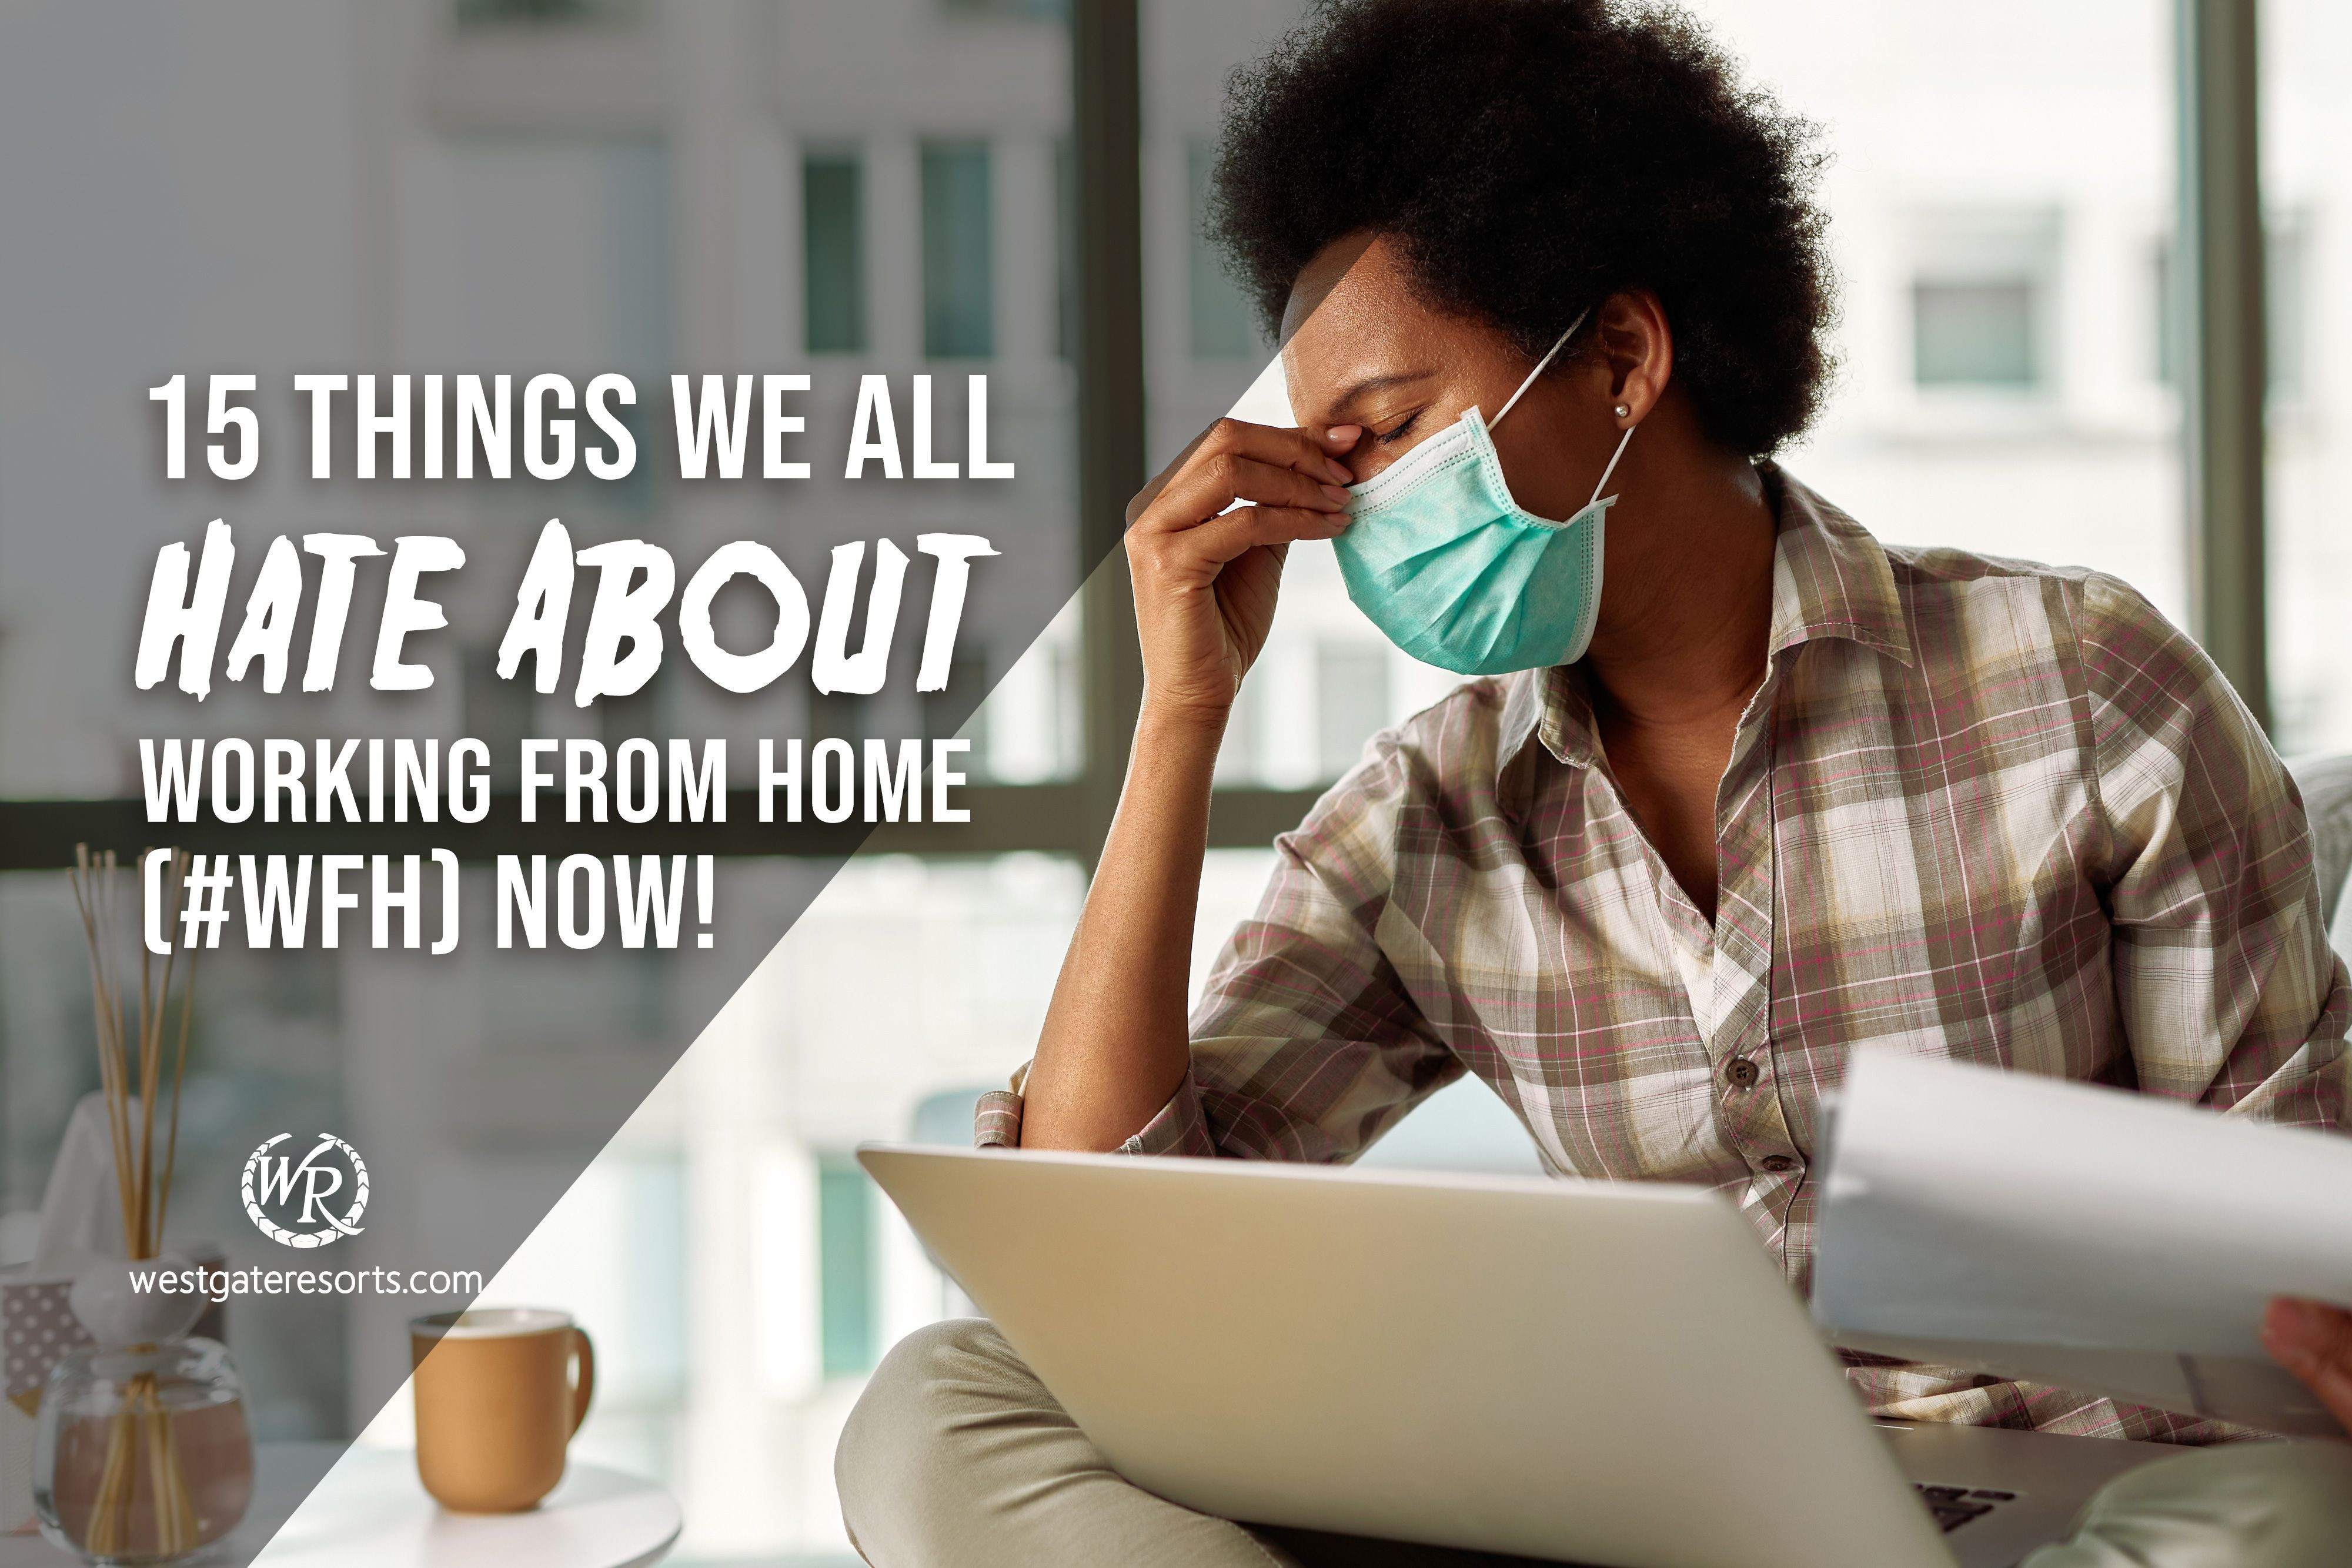 15 Things We All Hate About Working From Home (#WFH) Now!